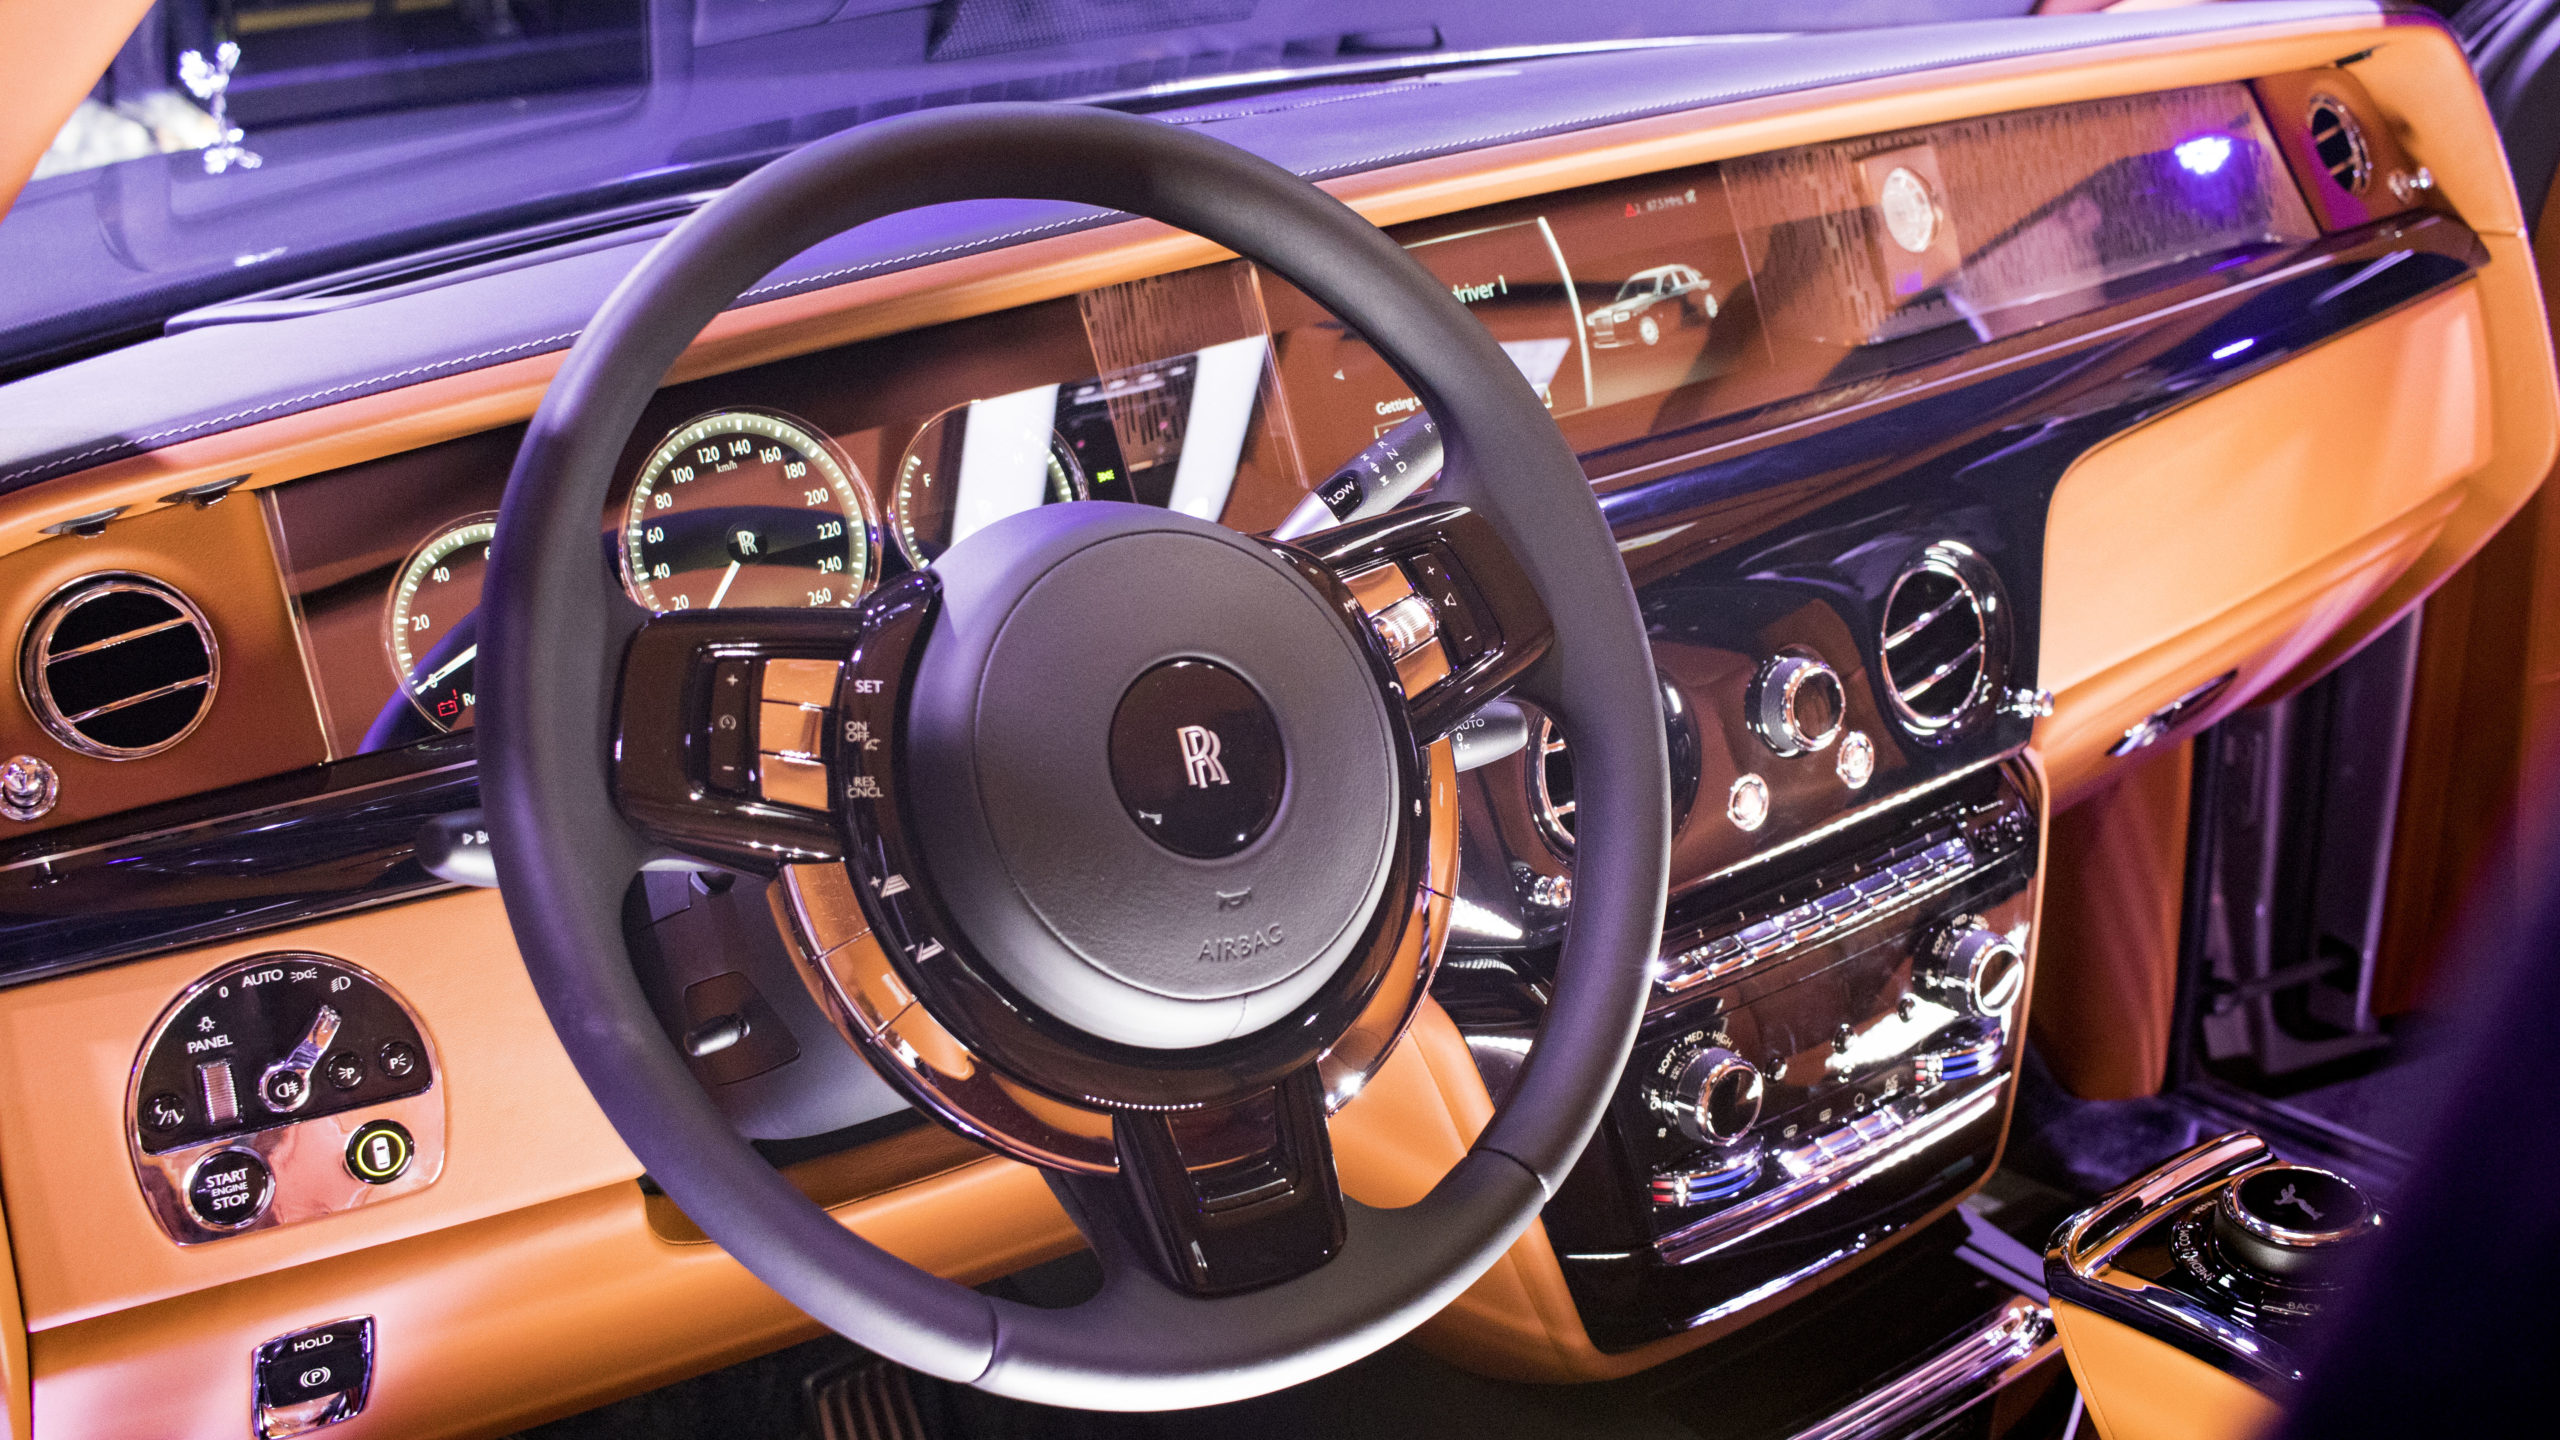 New Rolls Royce Phantom The Most Technologically Advanced Rolls Ever Is Revealed In London